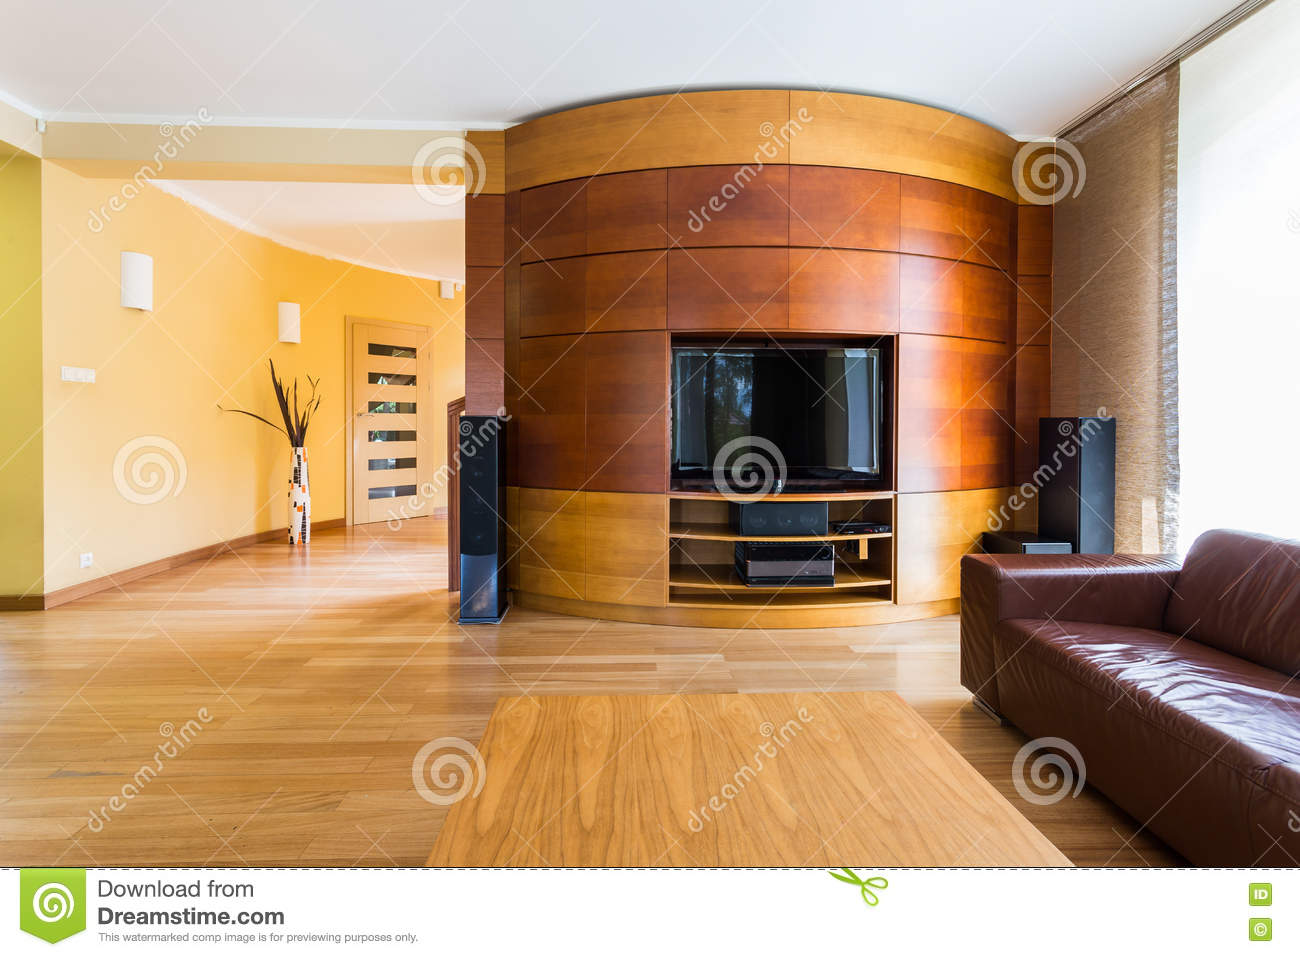 Shades Of Brown In Tv Living Room Stock Photo Image Of Luxury Design 75204432